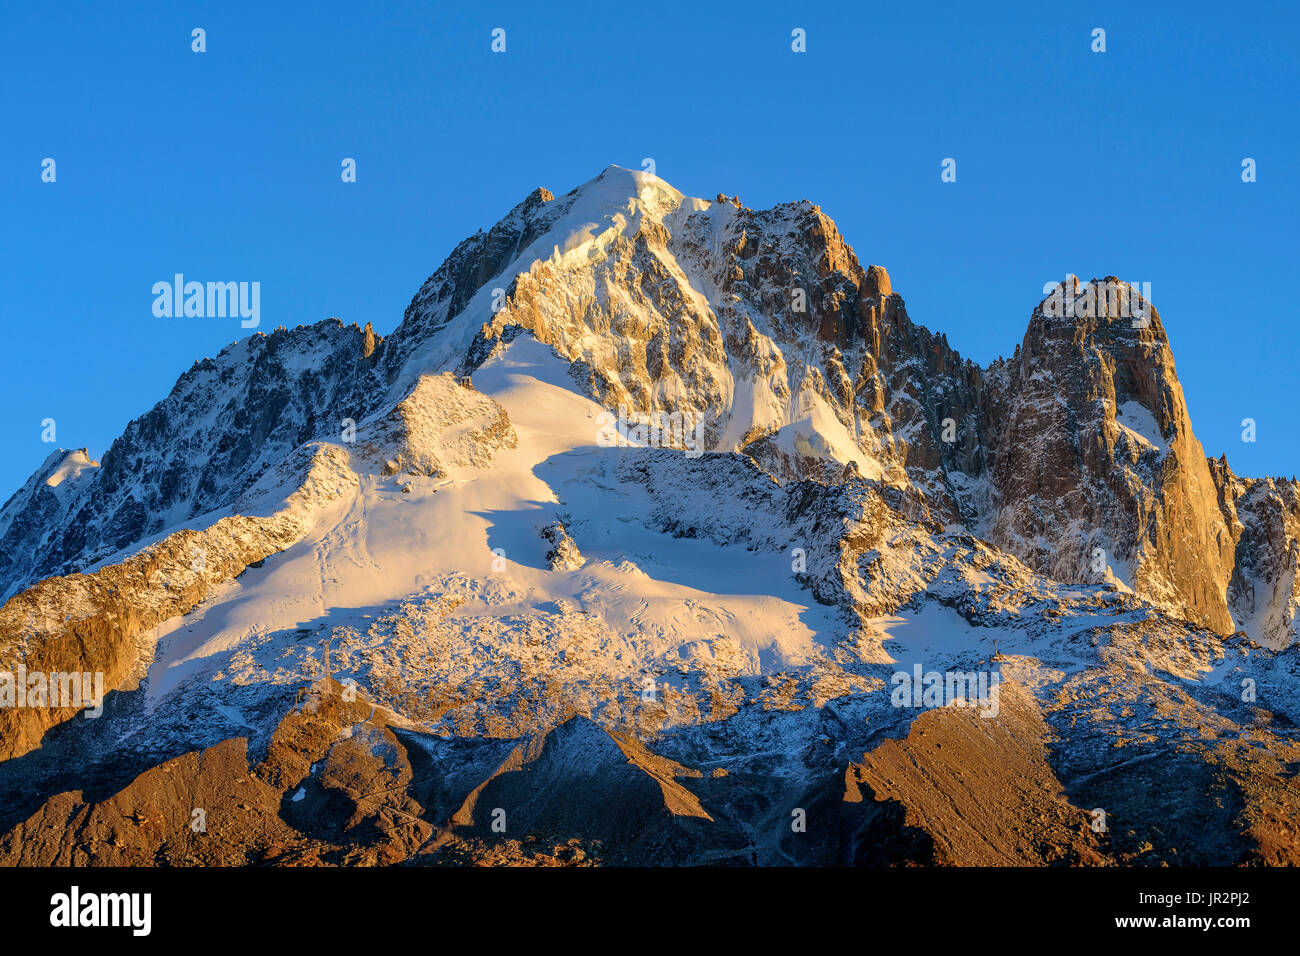 The Aiguille Verte and the Drus in autumn from Les Cheserys, Aiguilles Rouges Massif, Haute Savoie, Alps, France Stock Photo